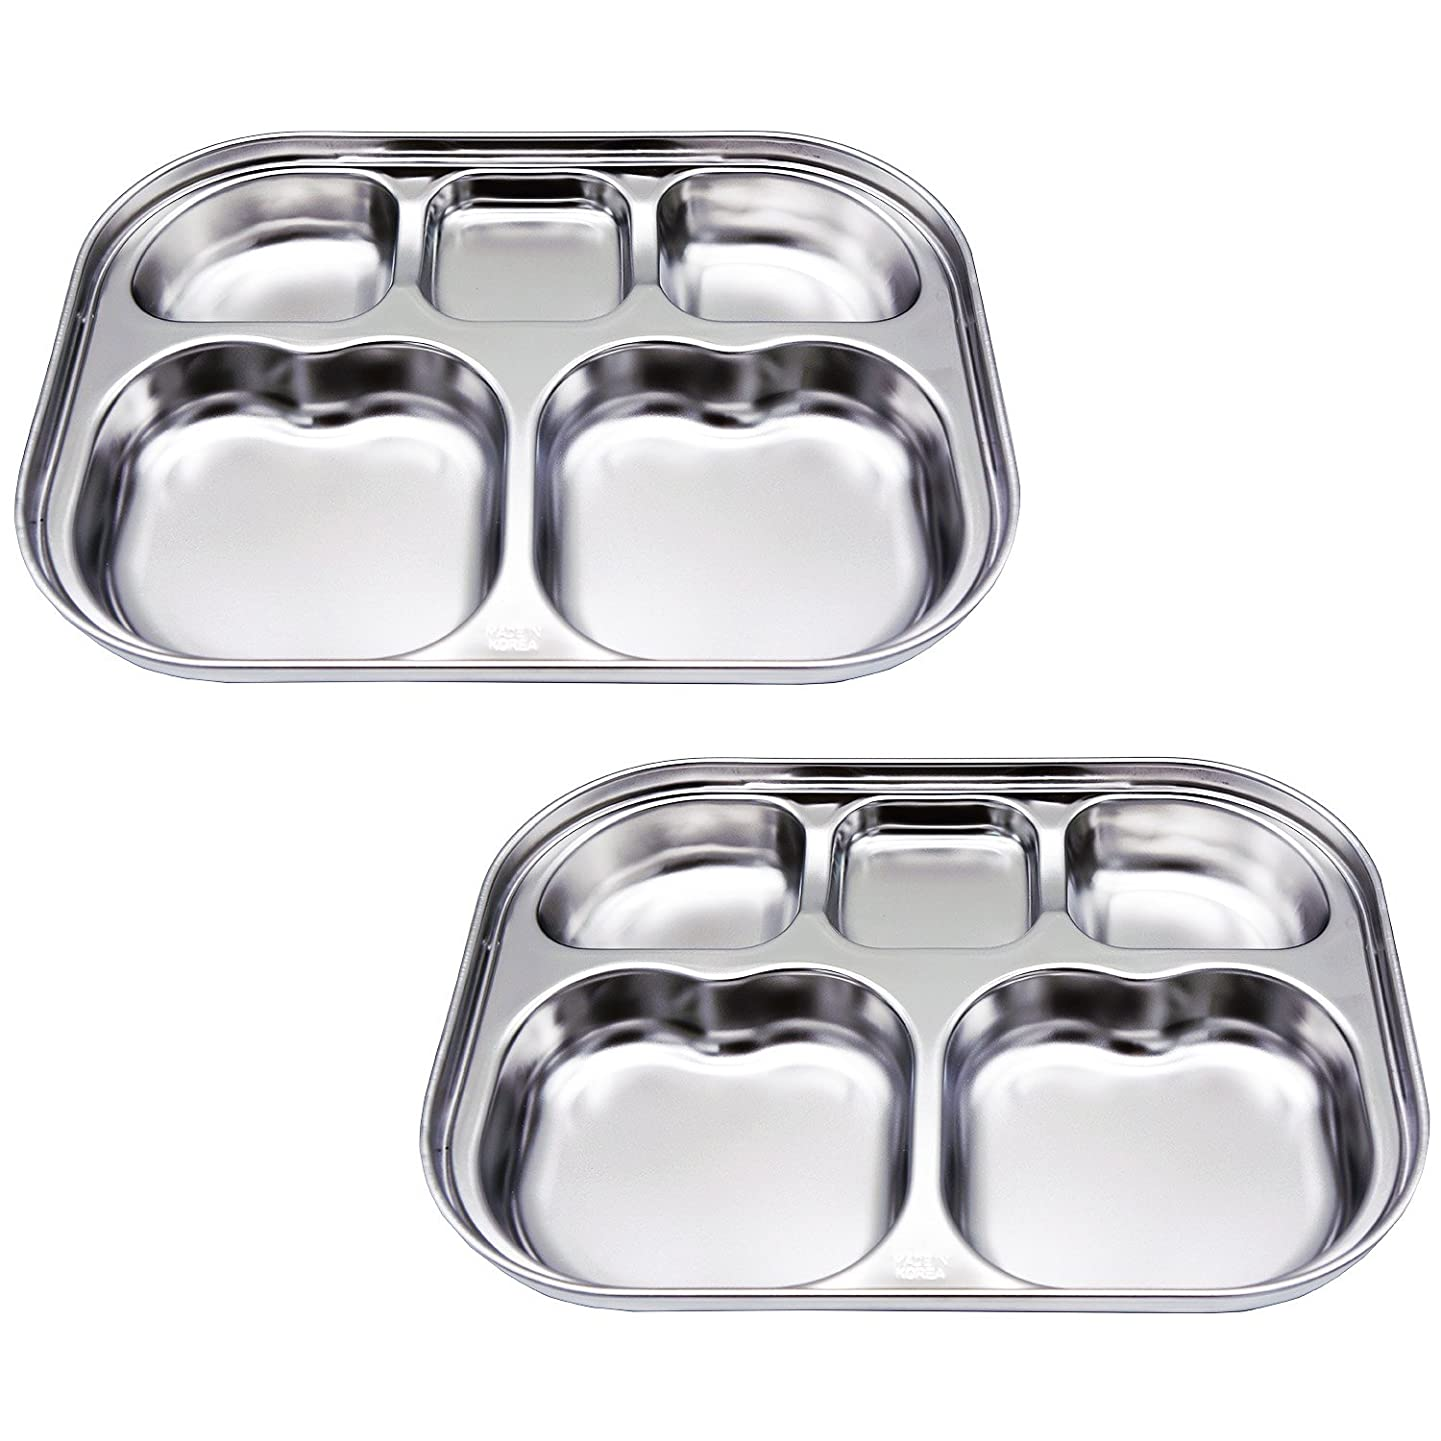 Stainless Steel Divided Plates by KS&E, Kids Toddlers Babies Tray, BPA Free, Diet Food Control, Camping Dishes, Compact Serving Platter, Dinner Snack, 5 Compartment Plate Silver, Set of 2 uqsefmqfqxbz